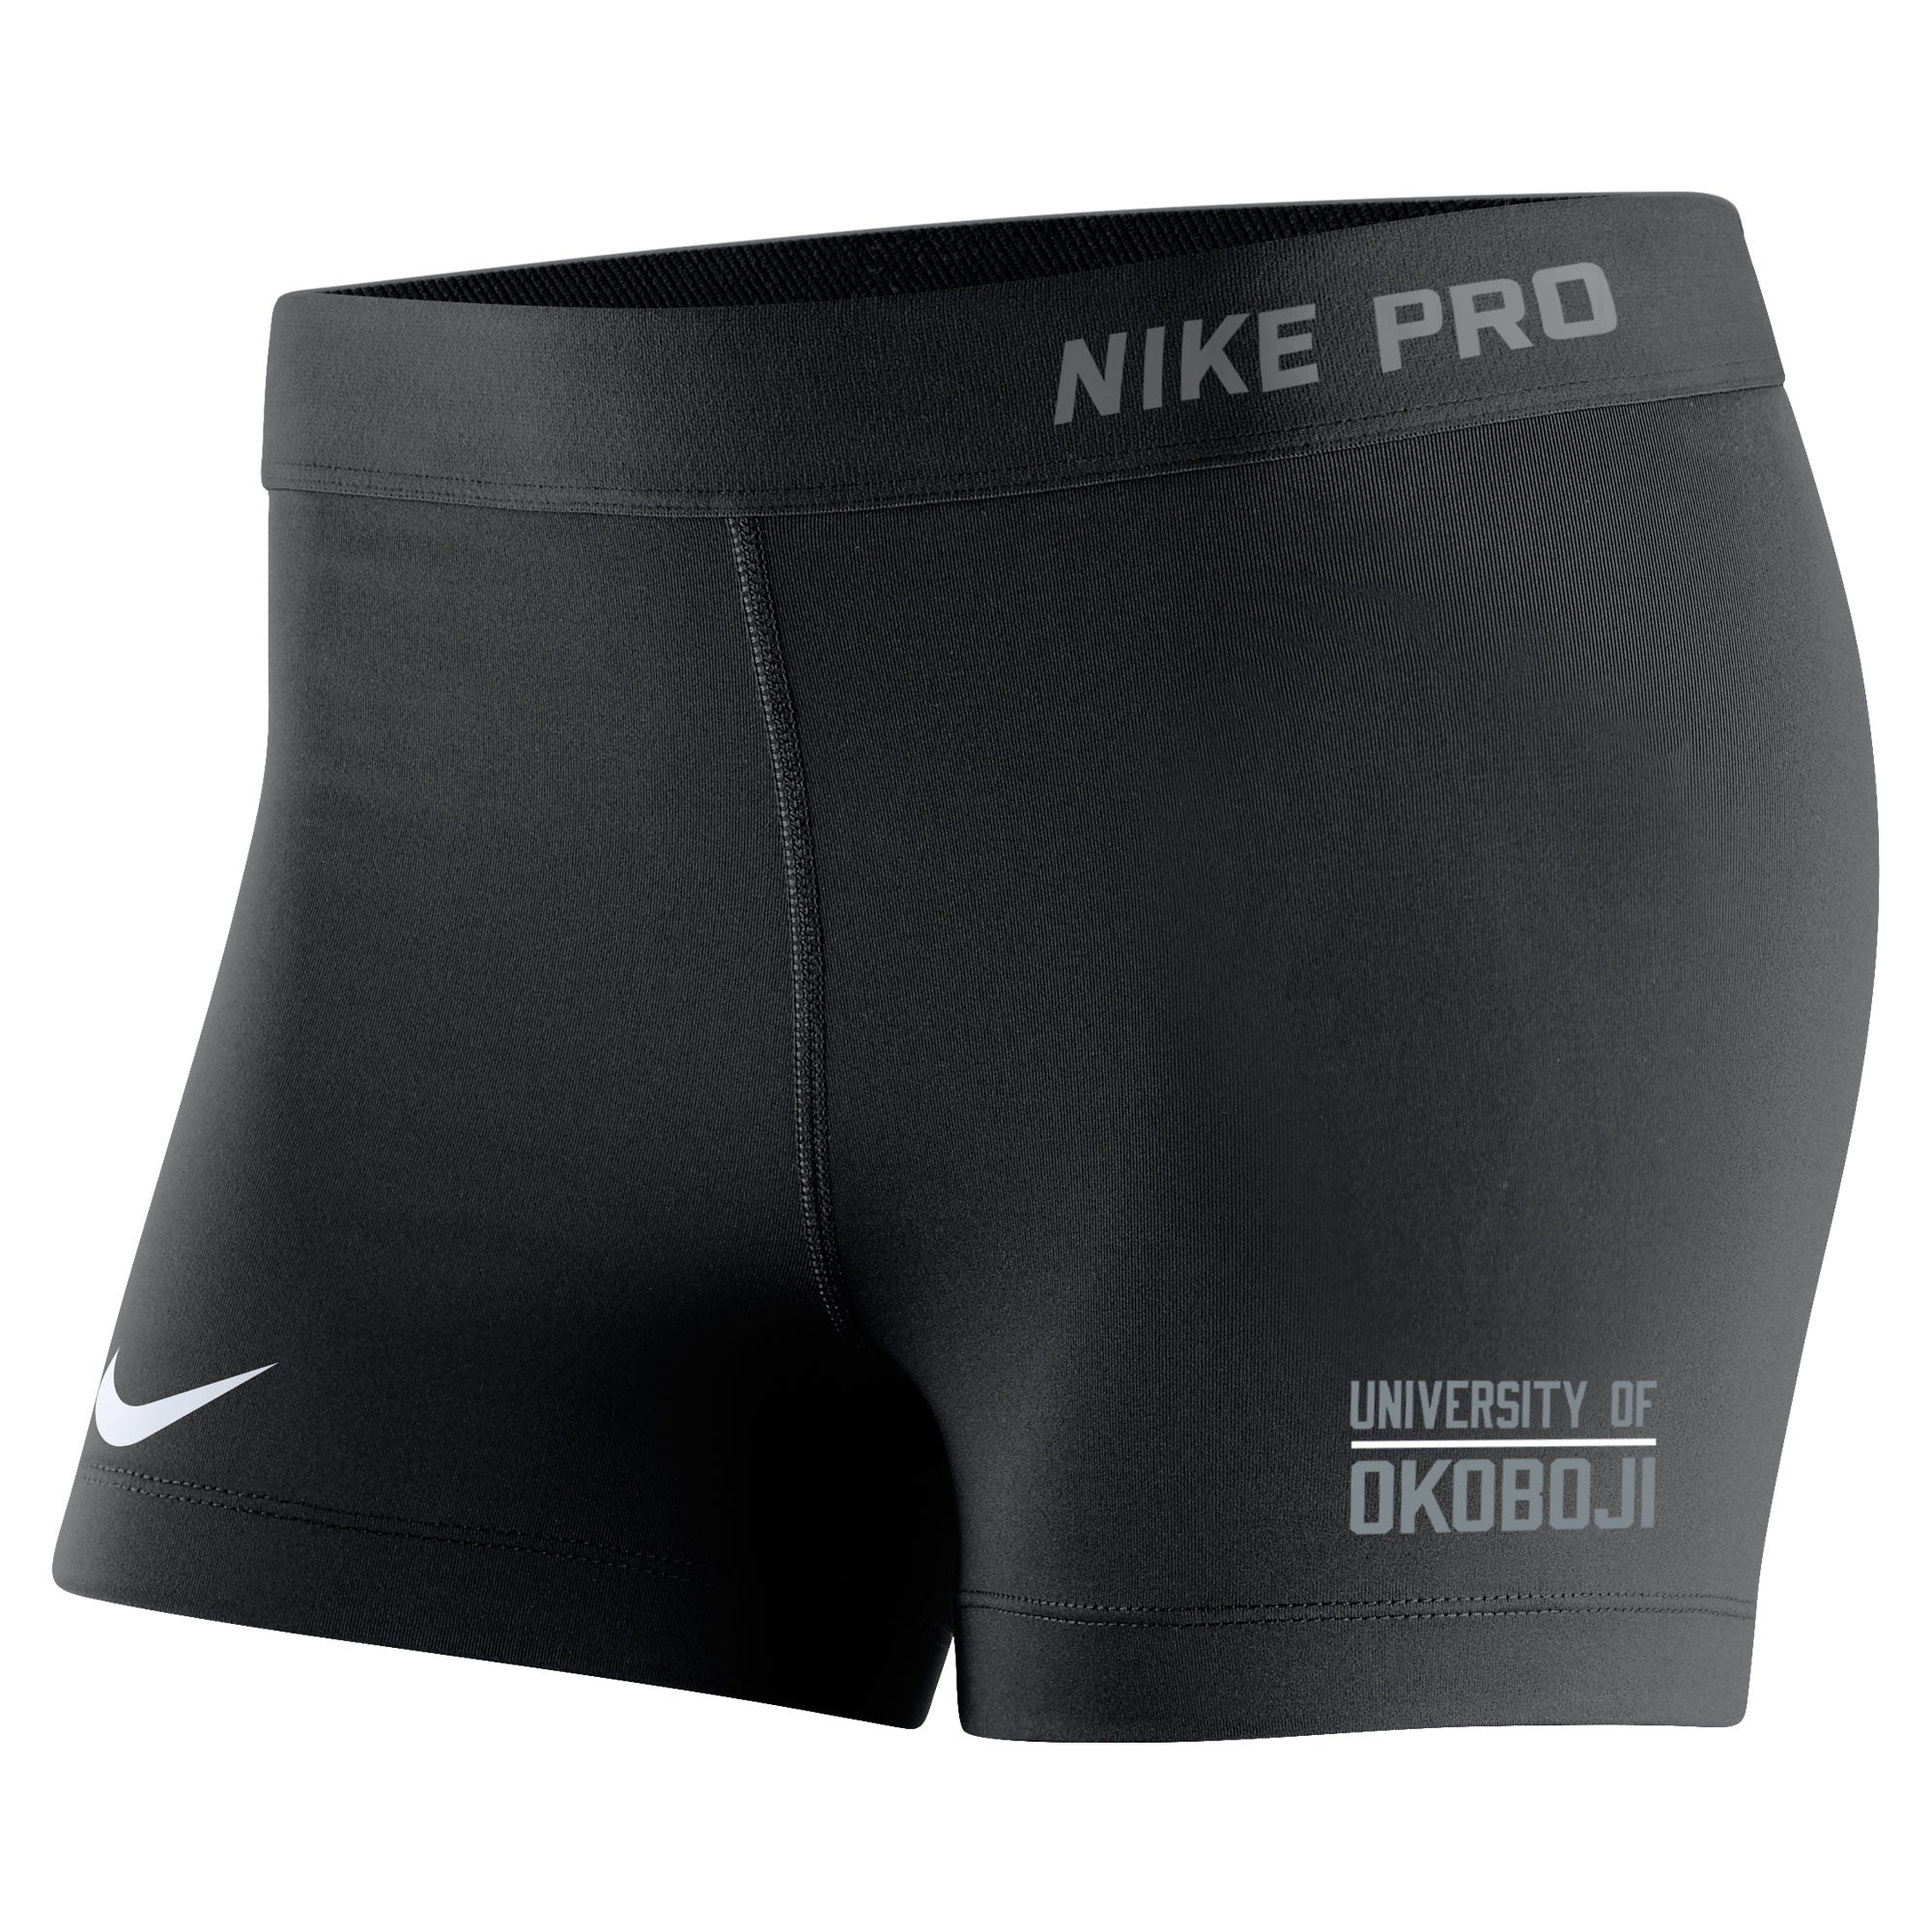 Women s Nike Pro Compression Short - Black - The Three Sons 73d23ec529a8